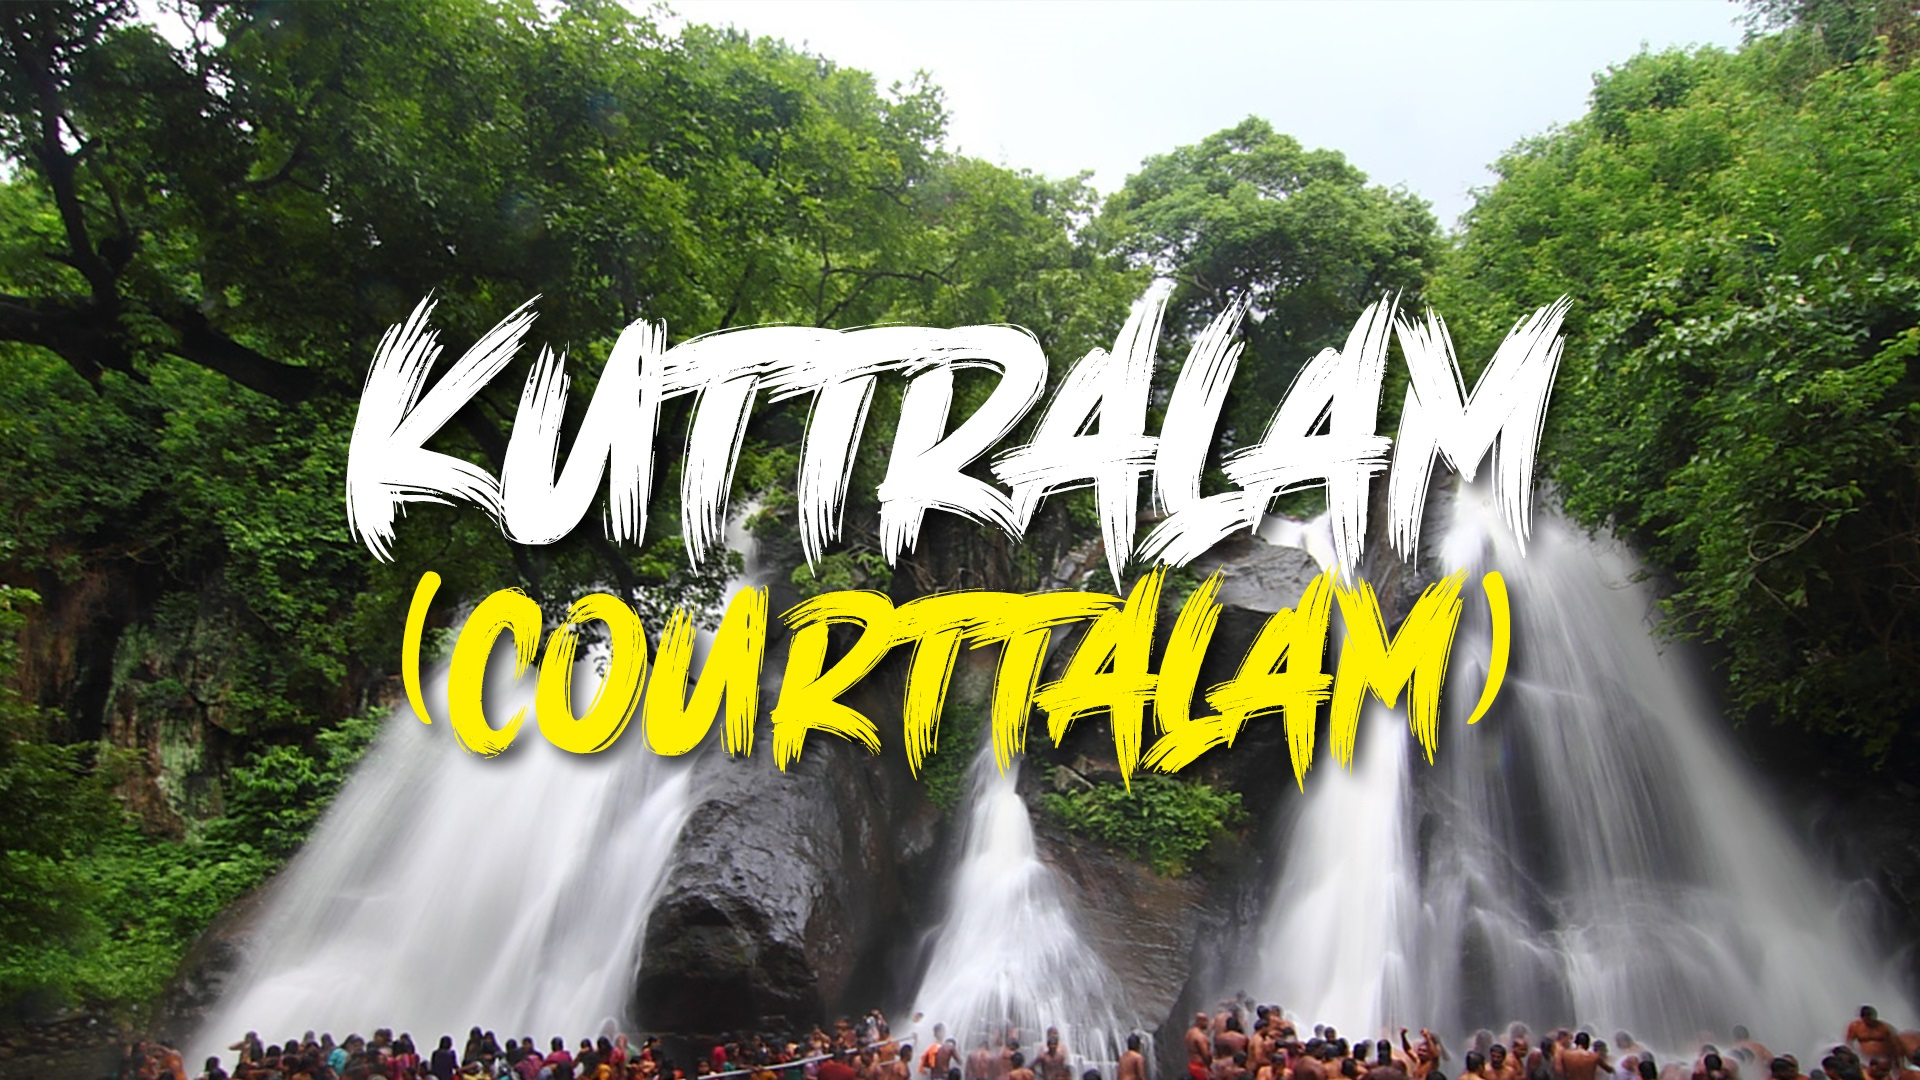 Courtallam - A Rare Low Altitude Hill Station